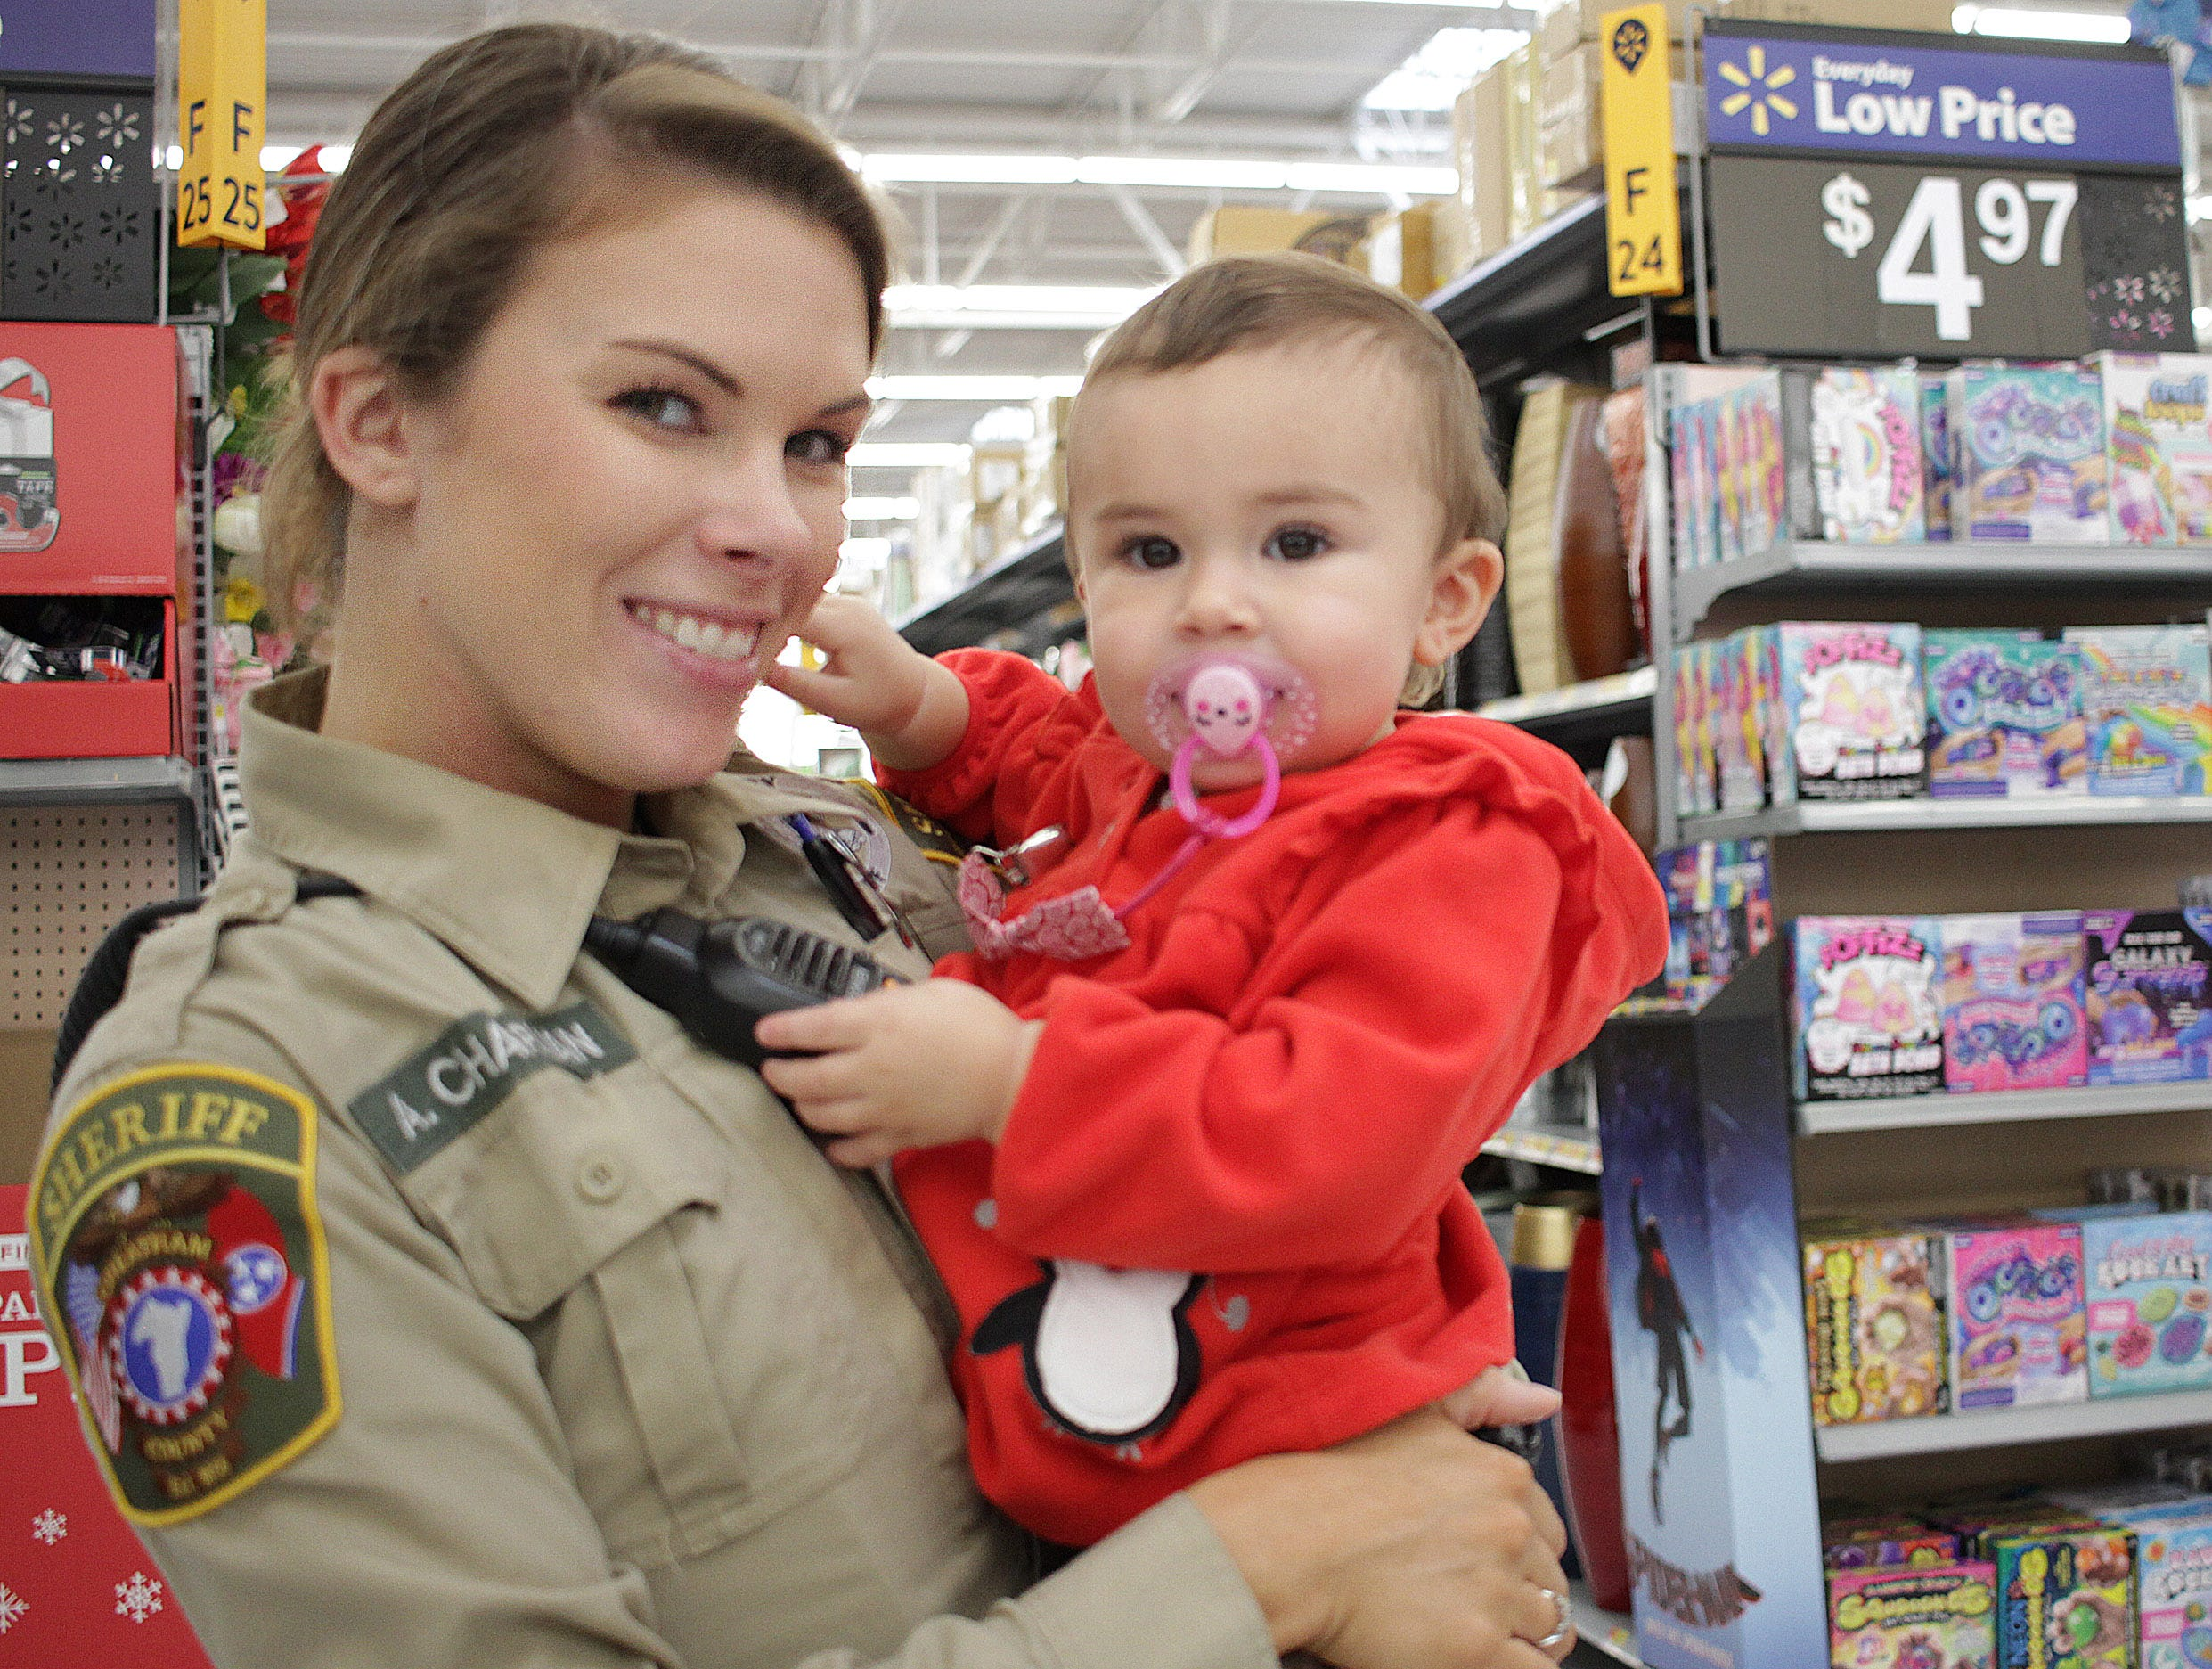 Deputy Ali Champman shops with her daughter Asher during Shop with a Cop in Ashland City on Saturday, December 15, 2018.